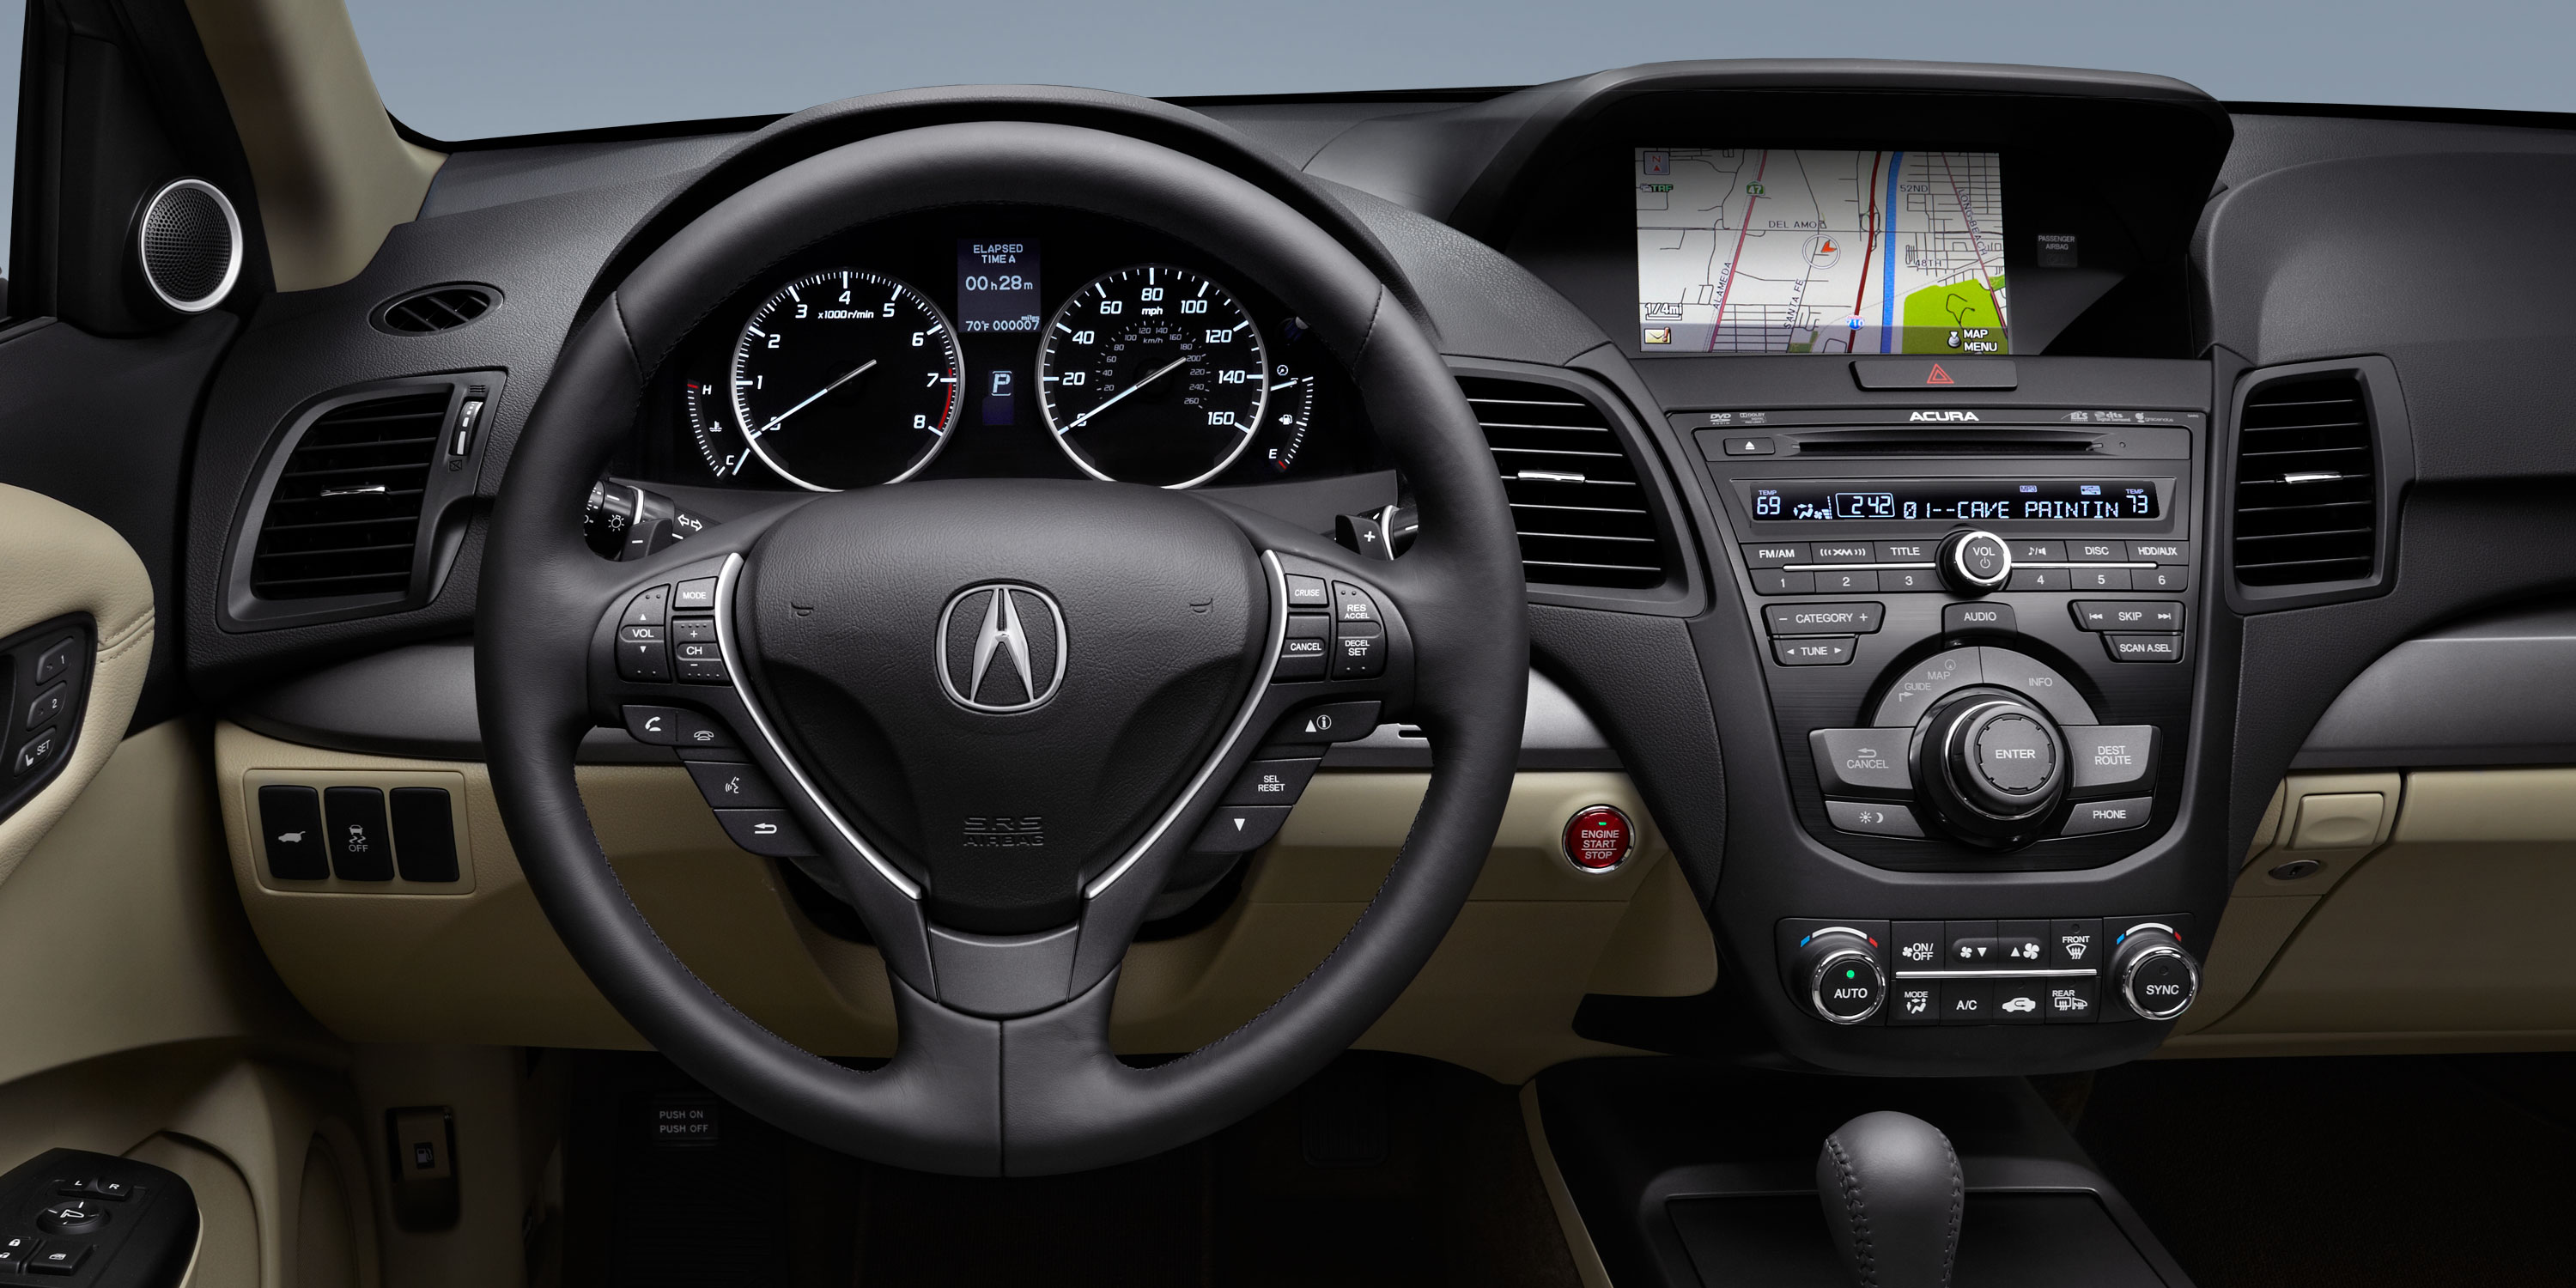 acura rdx images #7